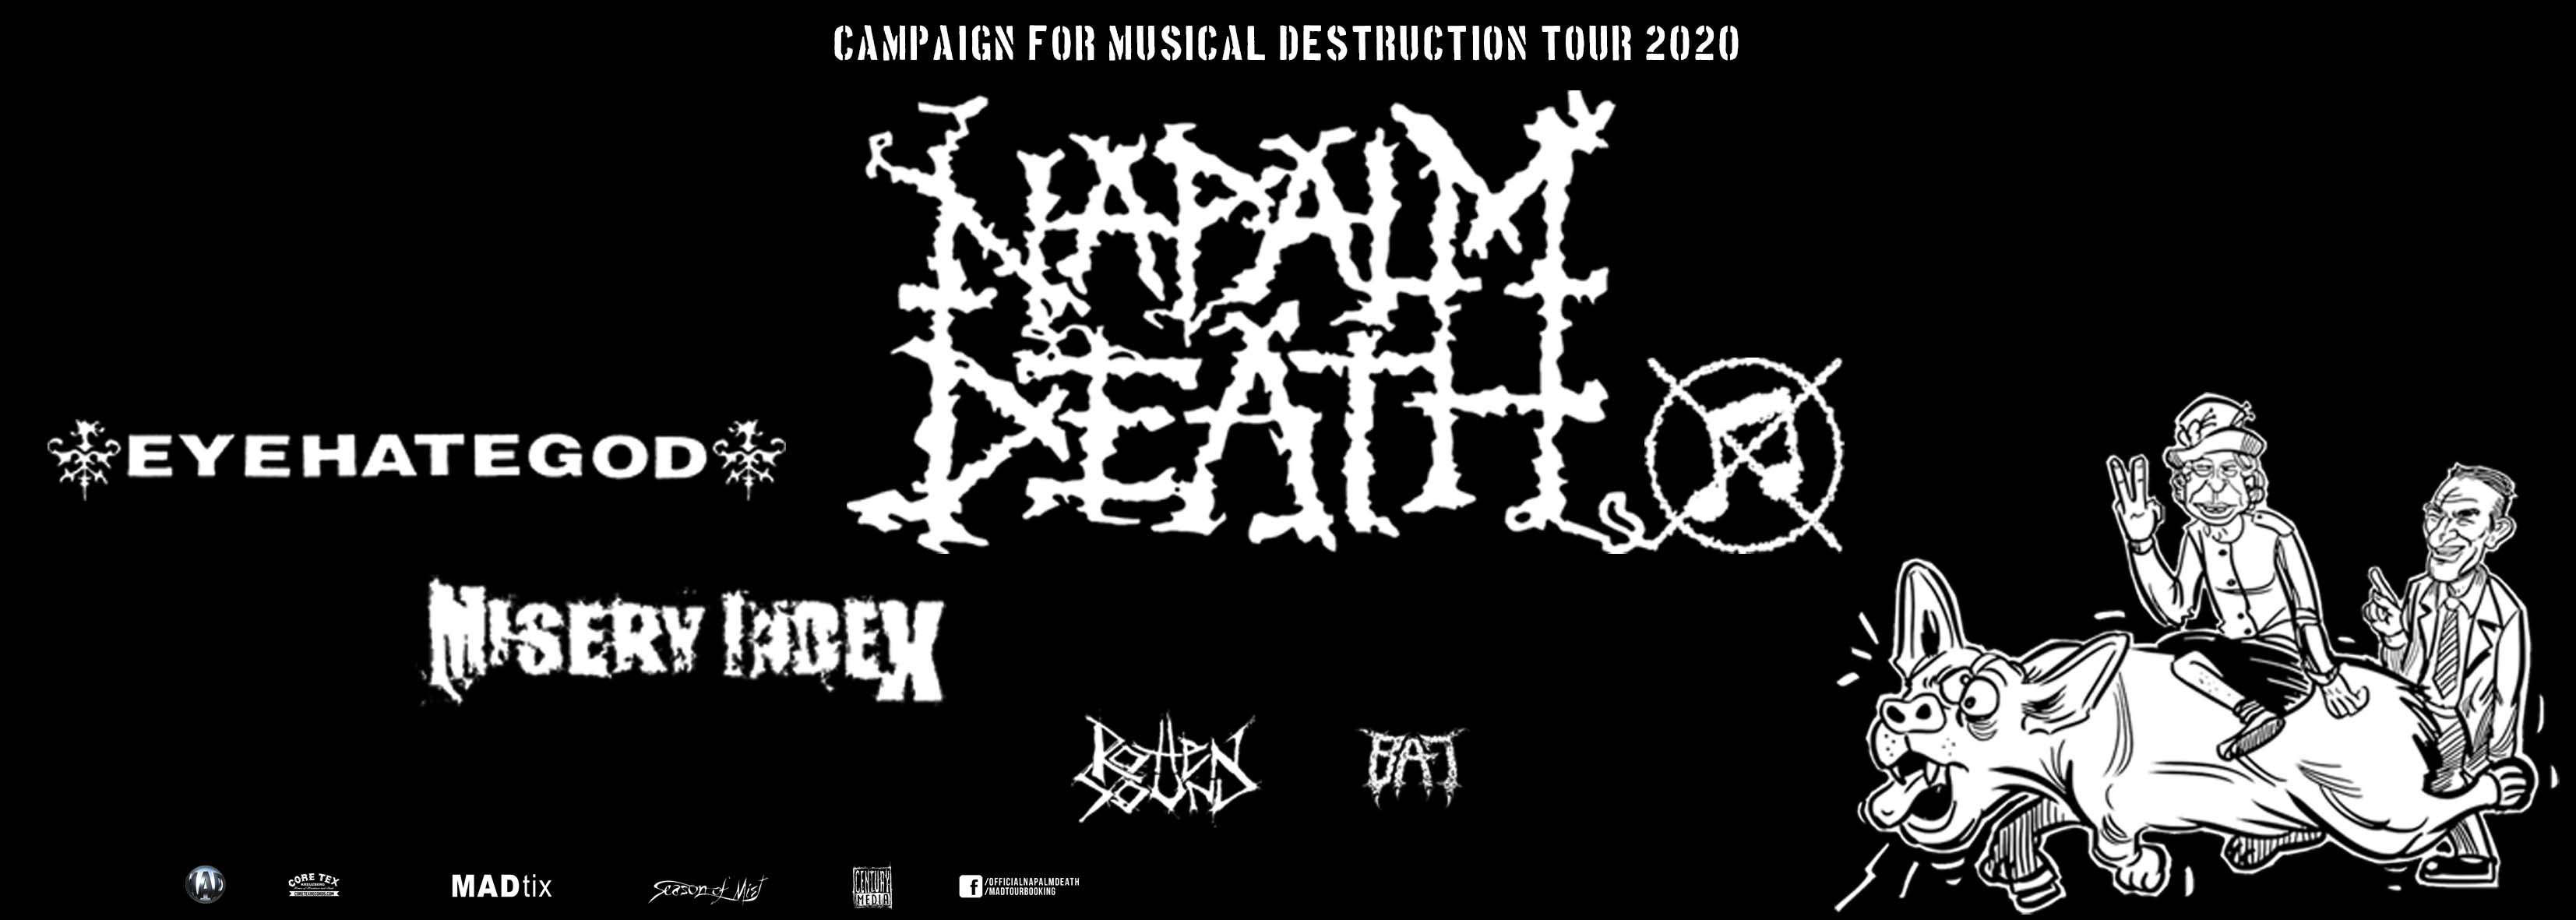 CAMPAIGN FOR MUSICAL DESTRUCTION